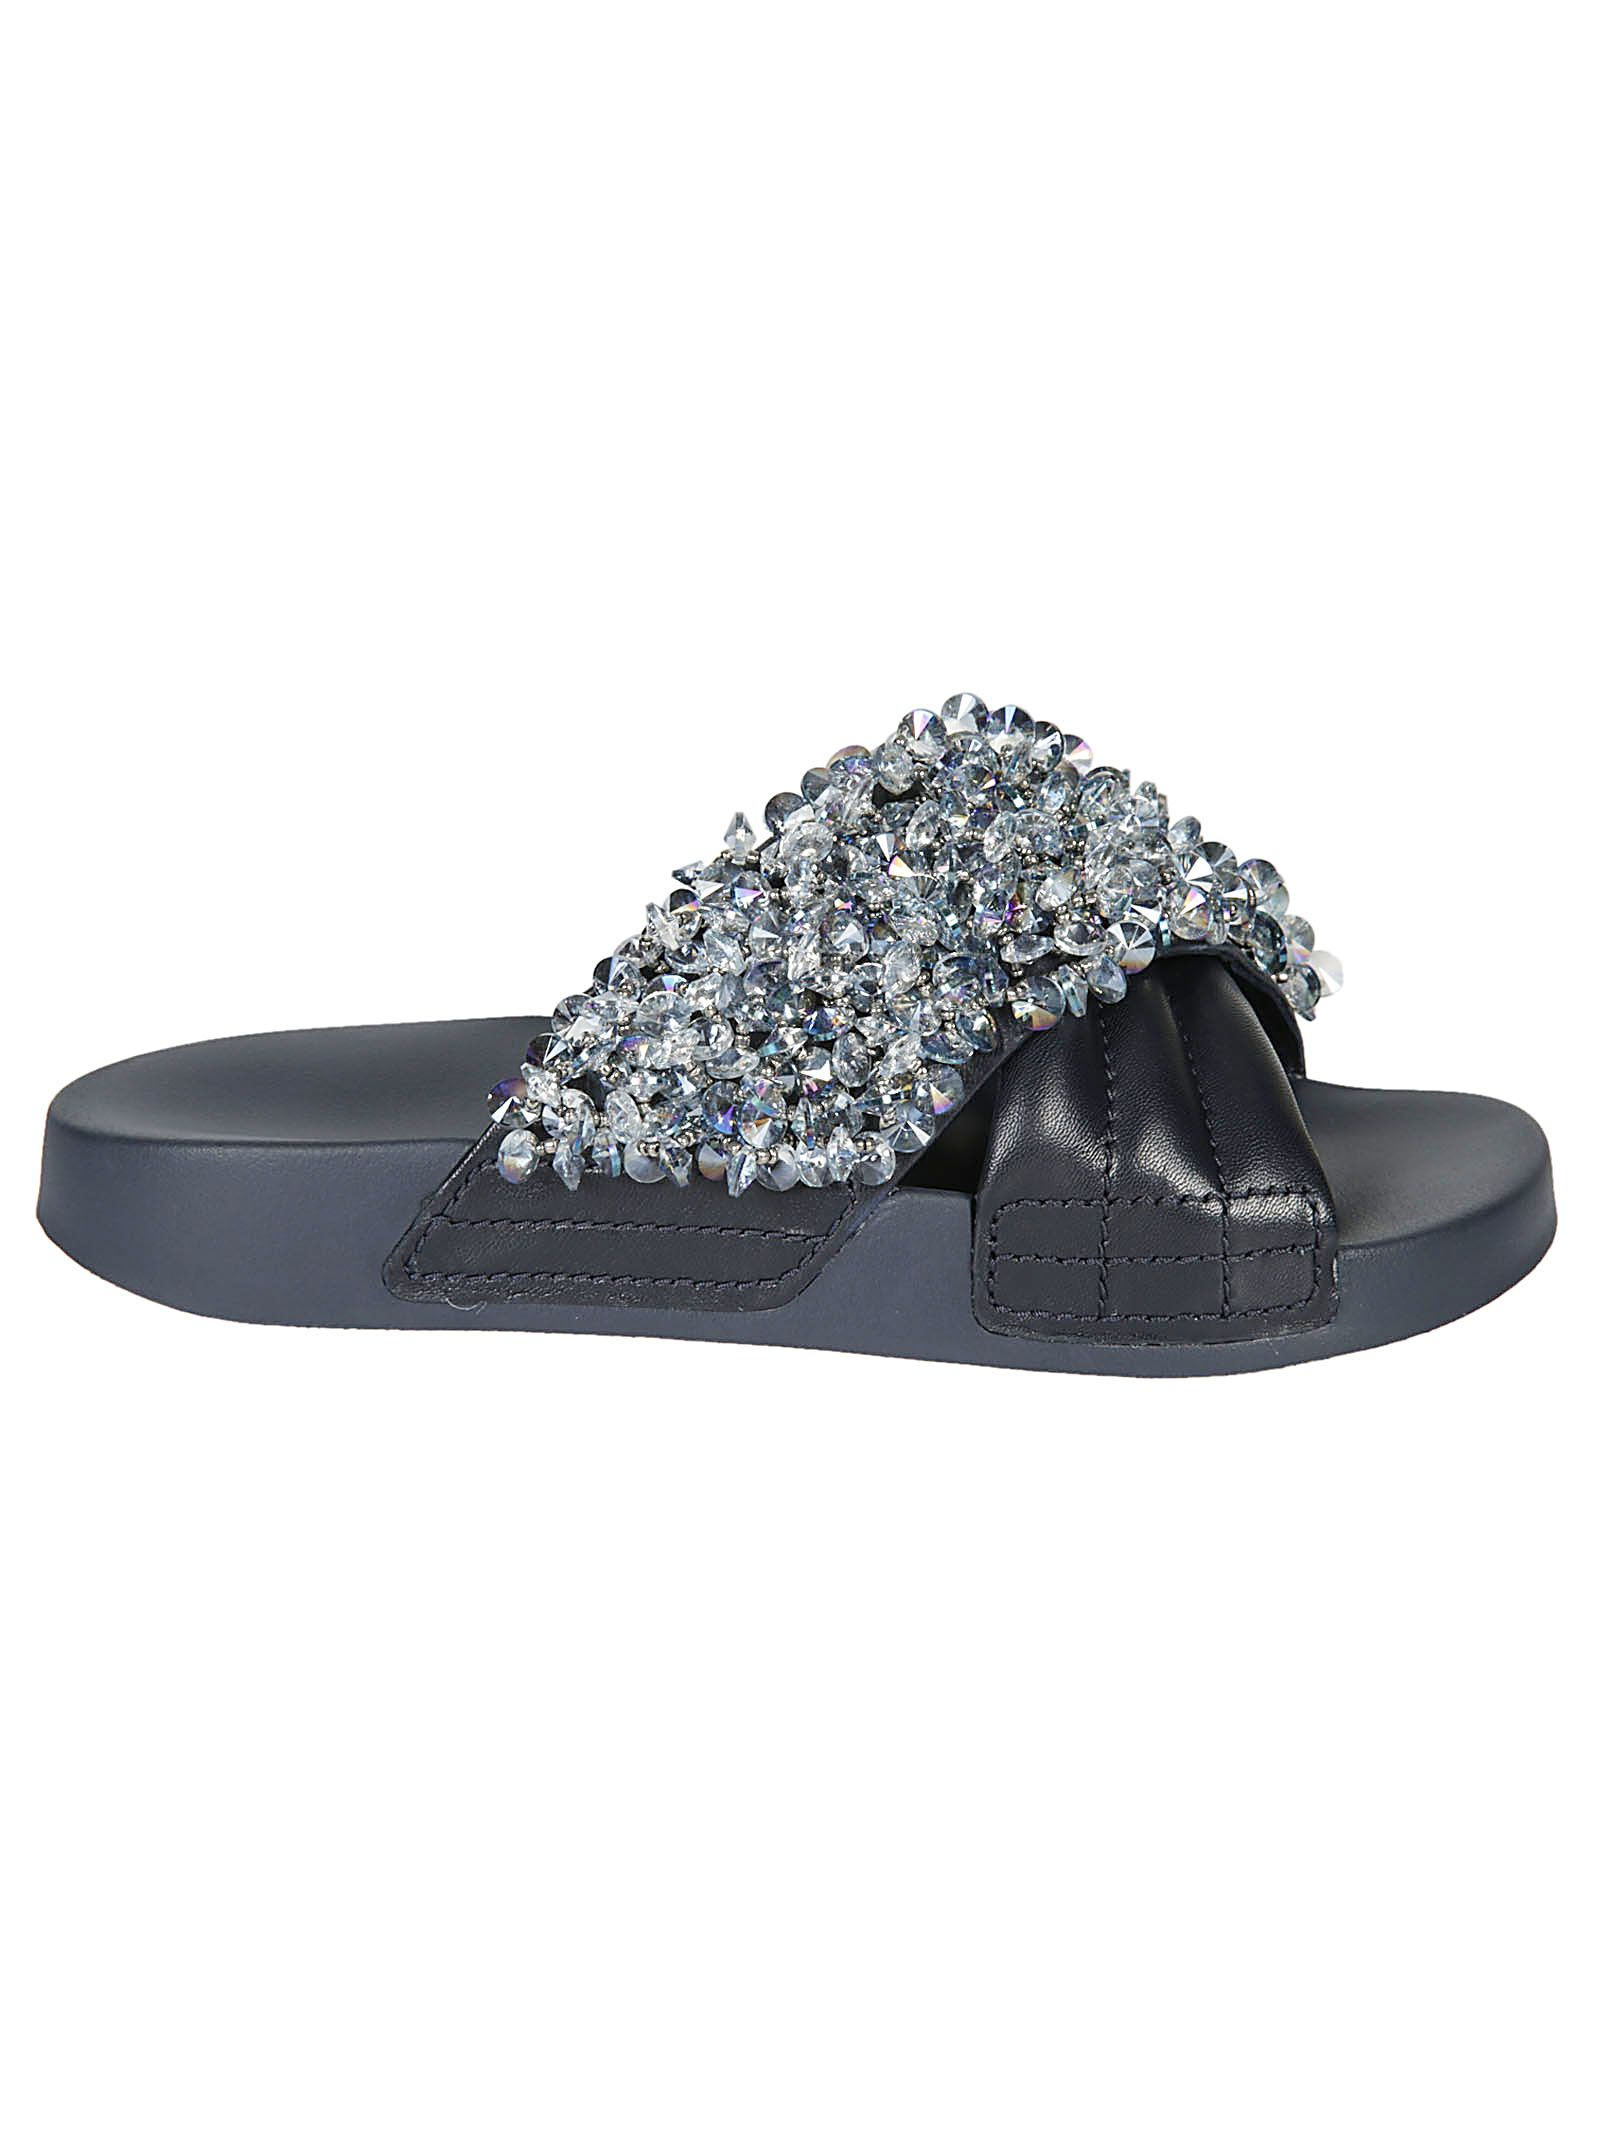 Sneakernews Tory Burch Crystal Embellished Sliders Sale Manchester foLx53KJJ